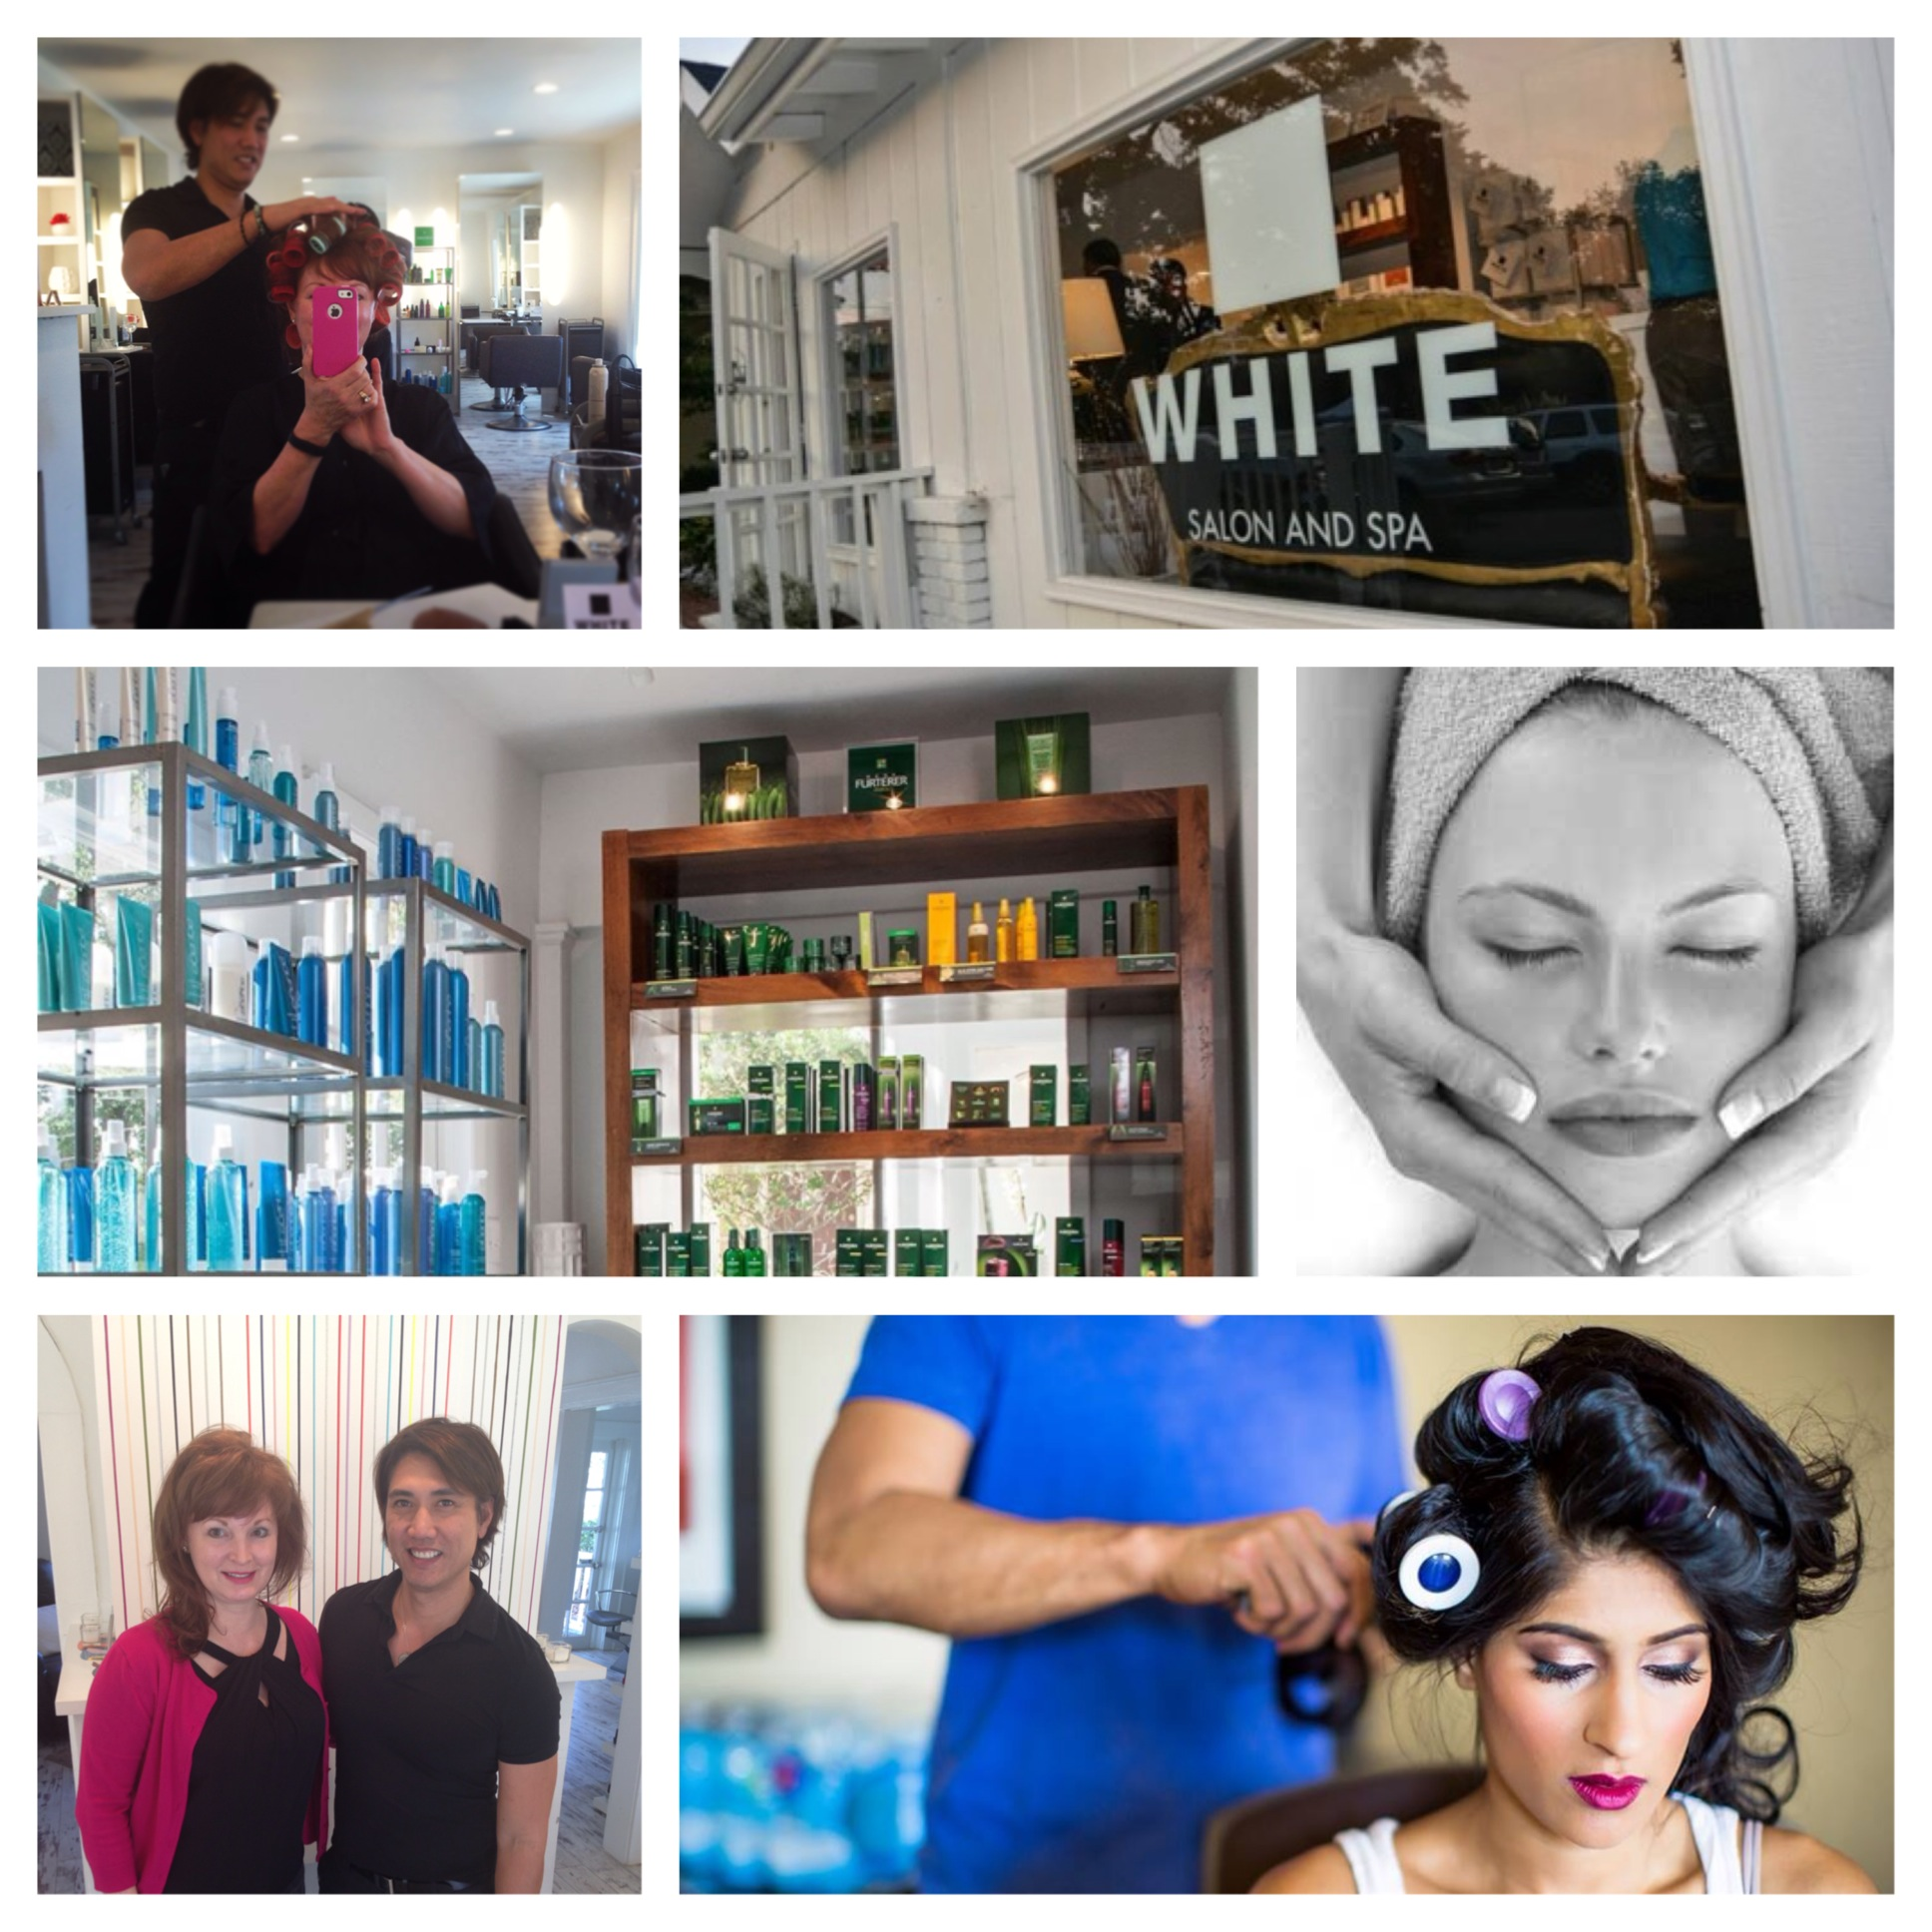 Venture to White Salon and Spa